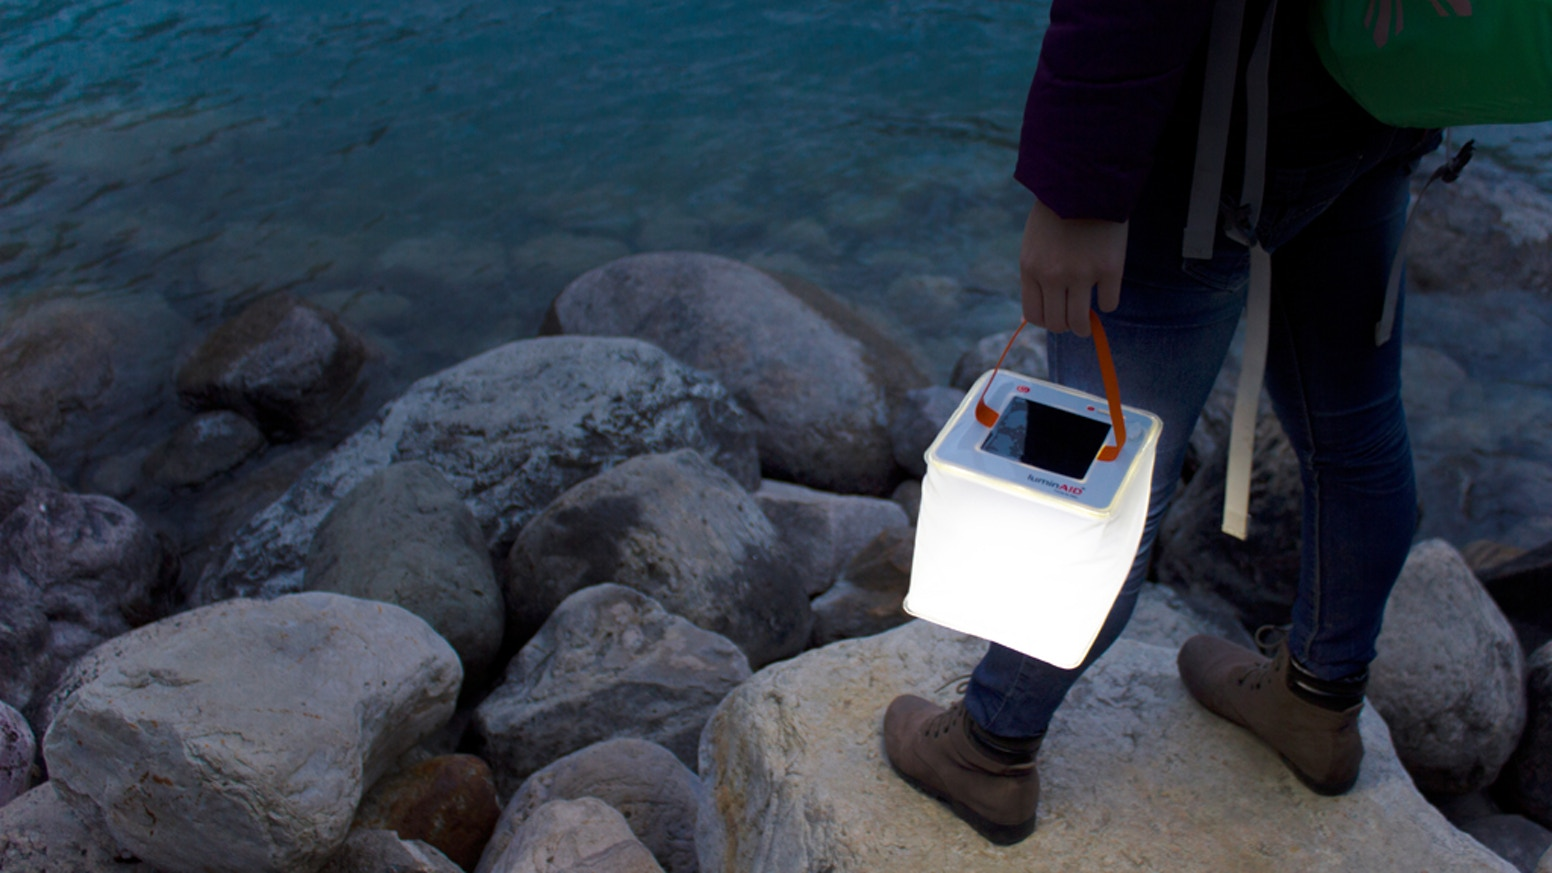 """Charge your gear anywhere!  A 2-in-1 solar lantern and phone charger that packs down to 1"""" thick. Portable power and light on the go! Missed the campaign? Order yours today!"""